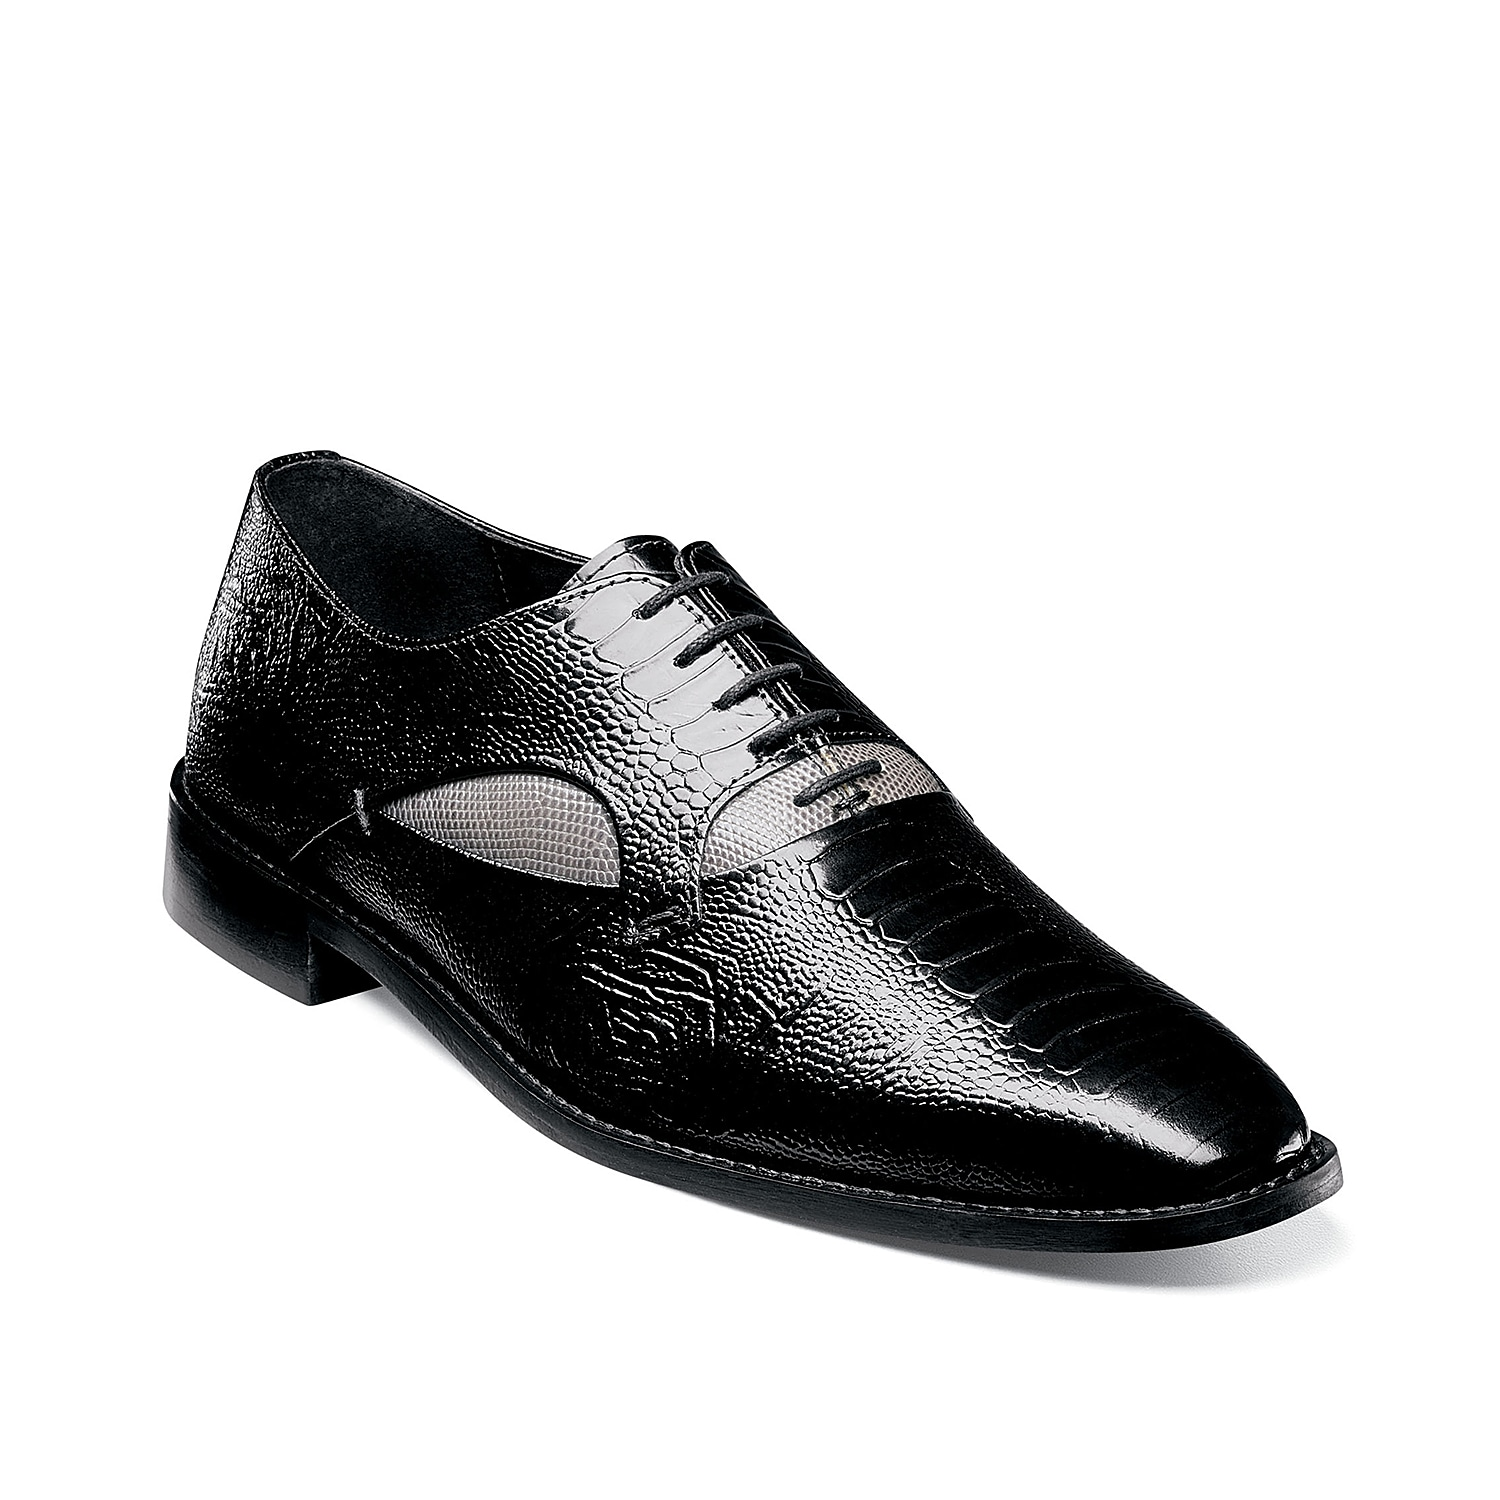 Stay ahead of the fashion curve with the Ricoletti oxford from Stacy Adams. Featuring a bold animal print leather upper, this lace-up will take your tailored look to the next level.